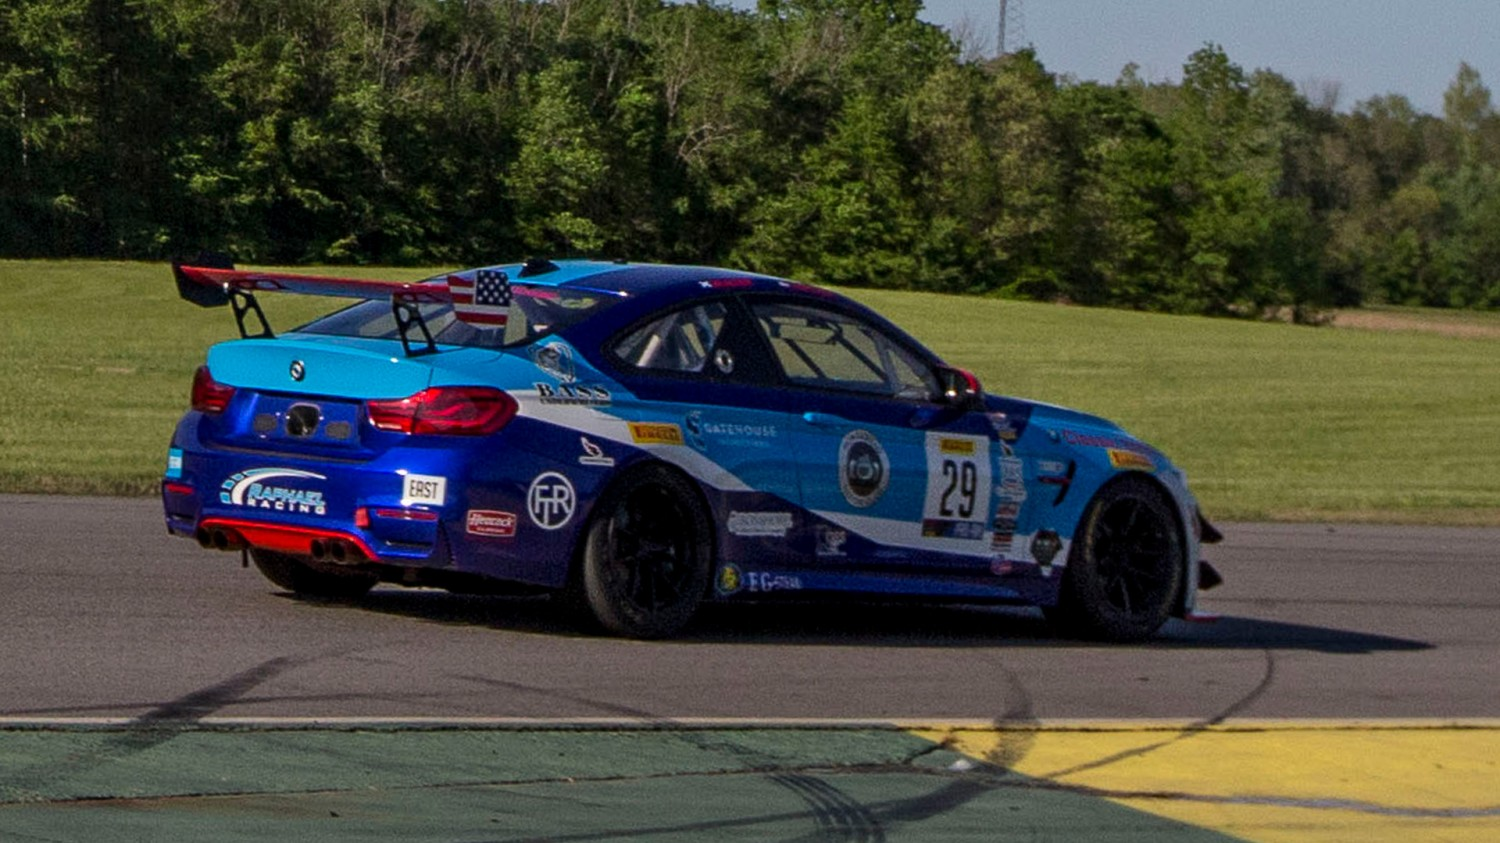 McAleer/Raphael Win Contentious SprintX Overall Podium Saturday